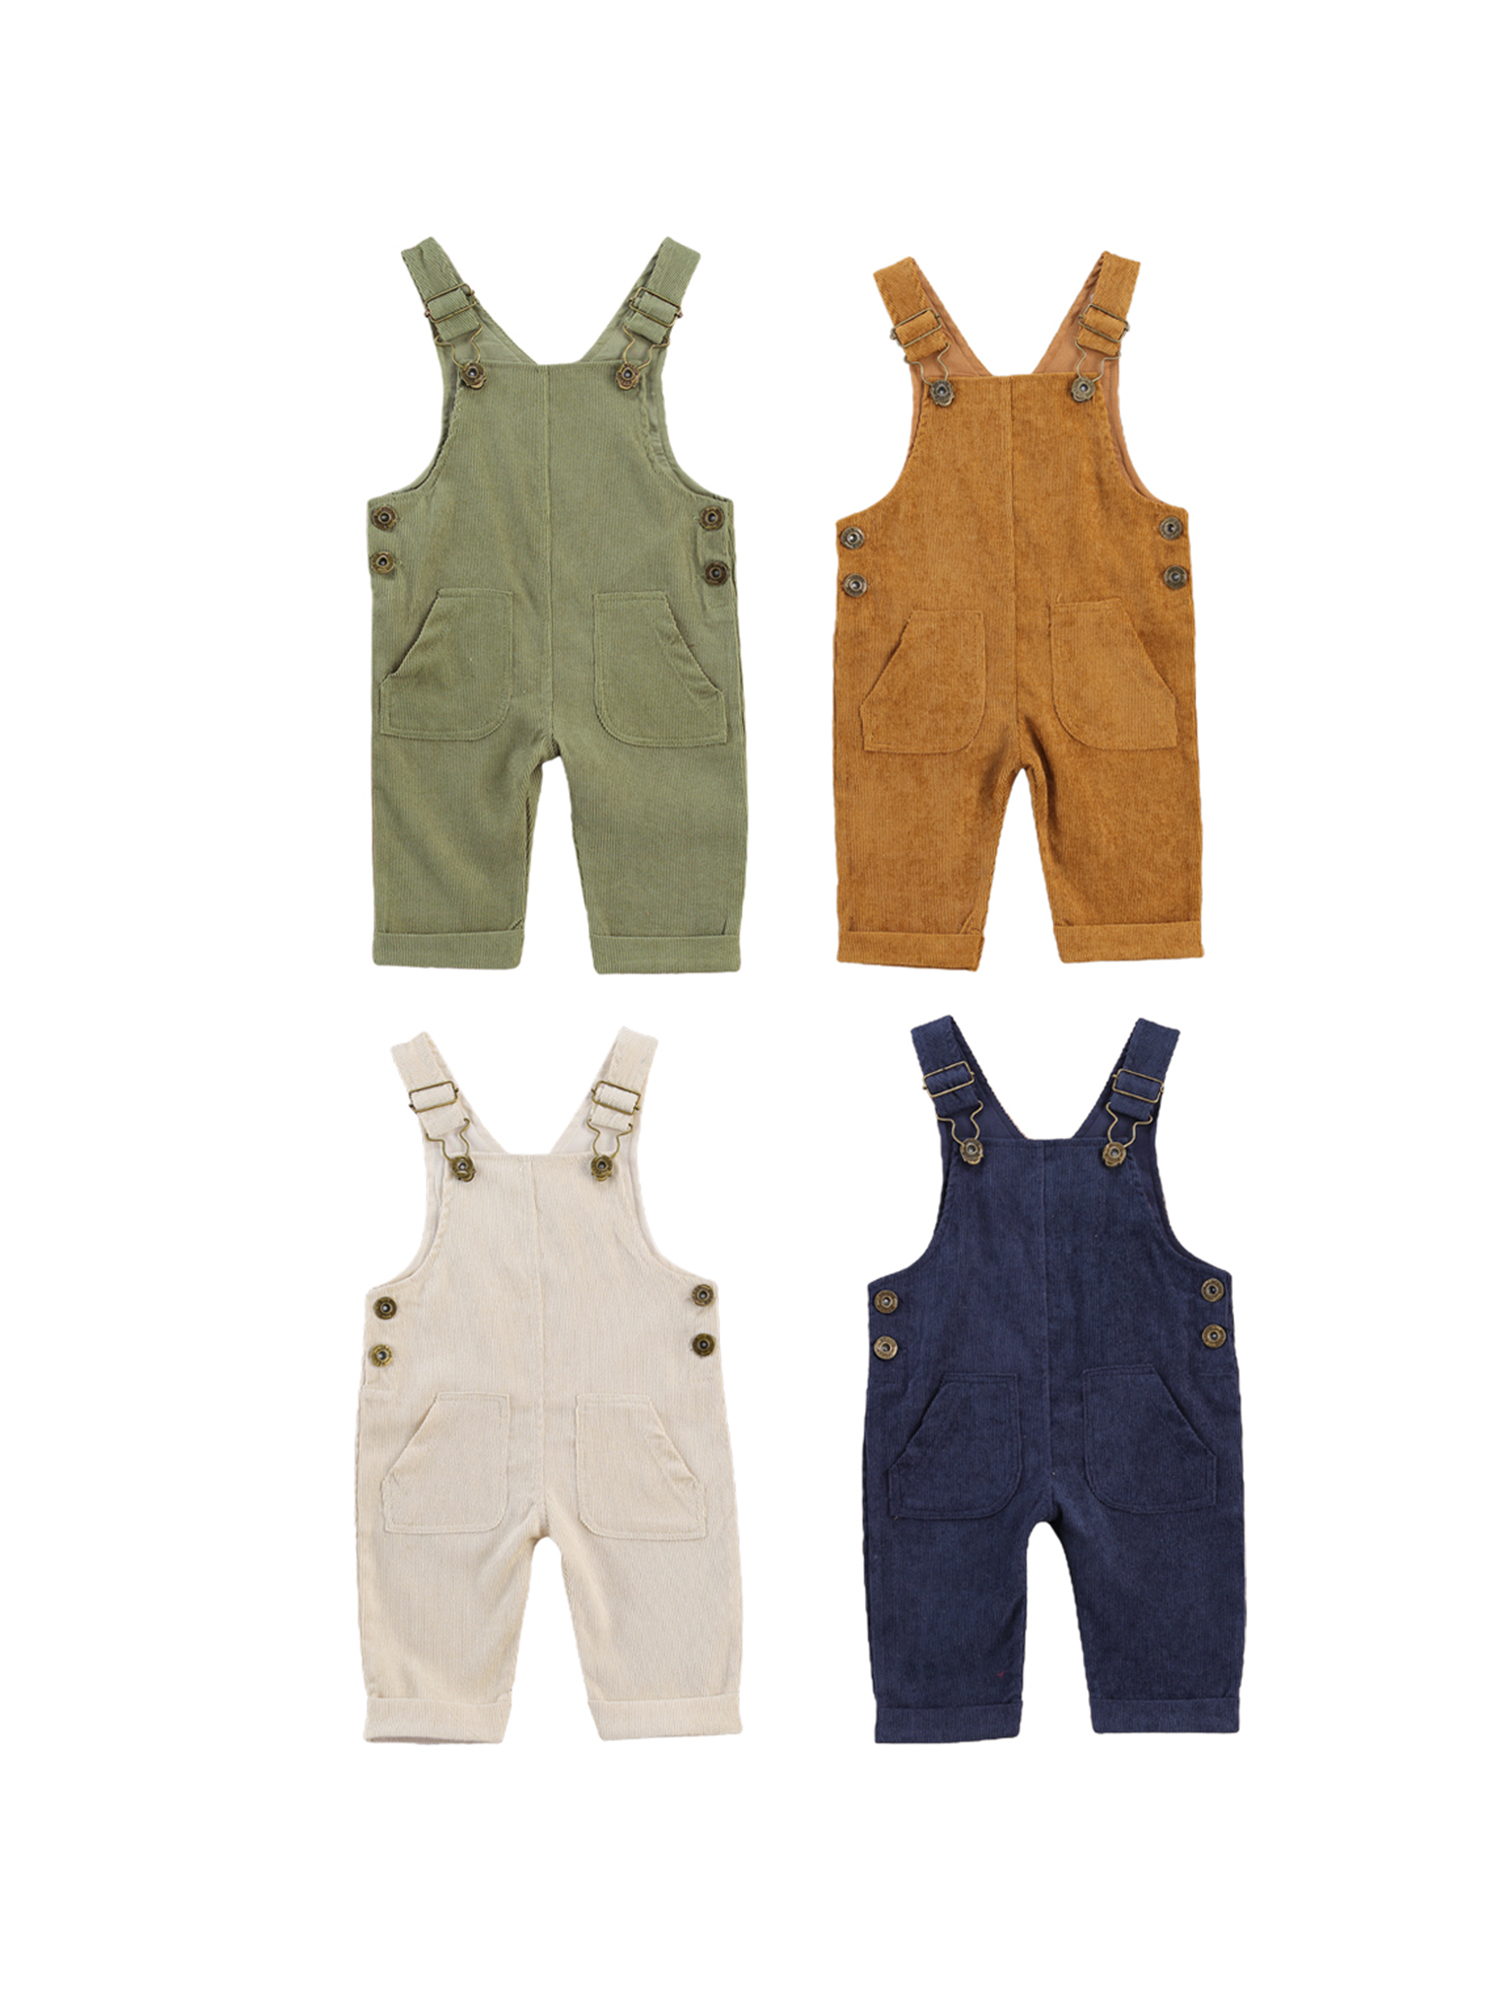 Baby Boys Suspender Pants with Buttons Loose Fit Solid Color Suspender Trousers Pockets Toddler Girl Adjustable Buckle Outfit